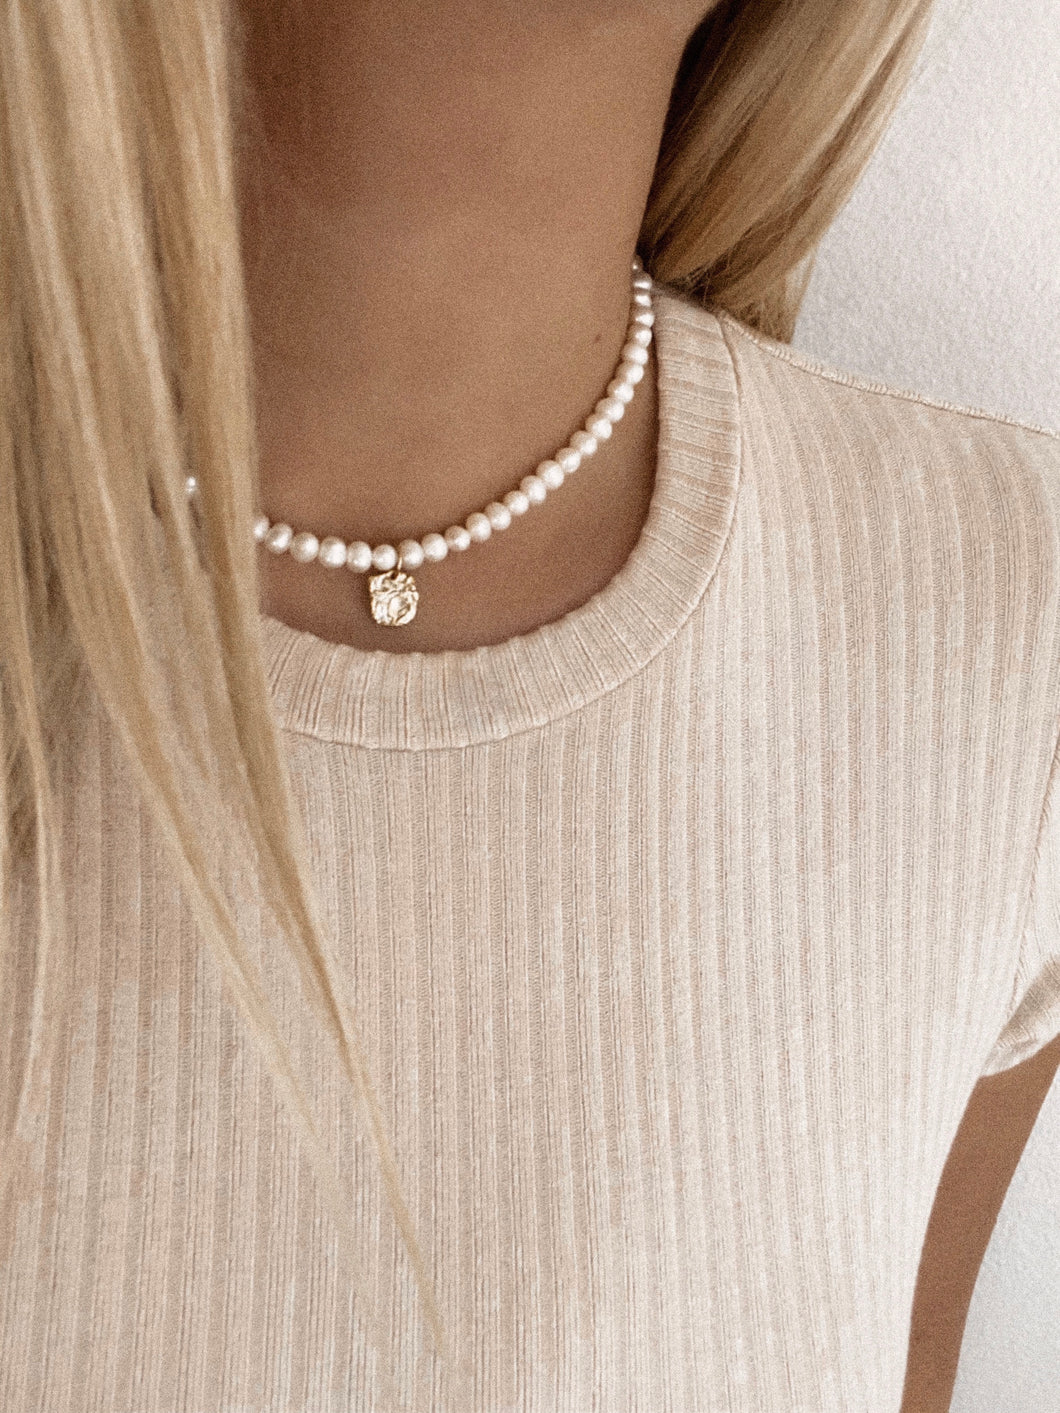 Vintage Charm Pearl Necklace - C.Dahl Jewelry | ShopCDahl